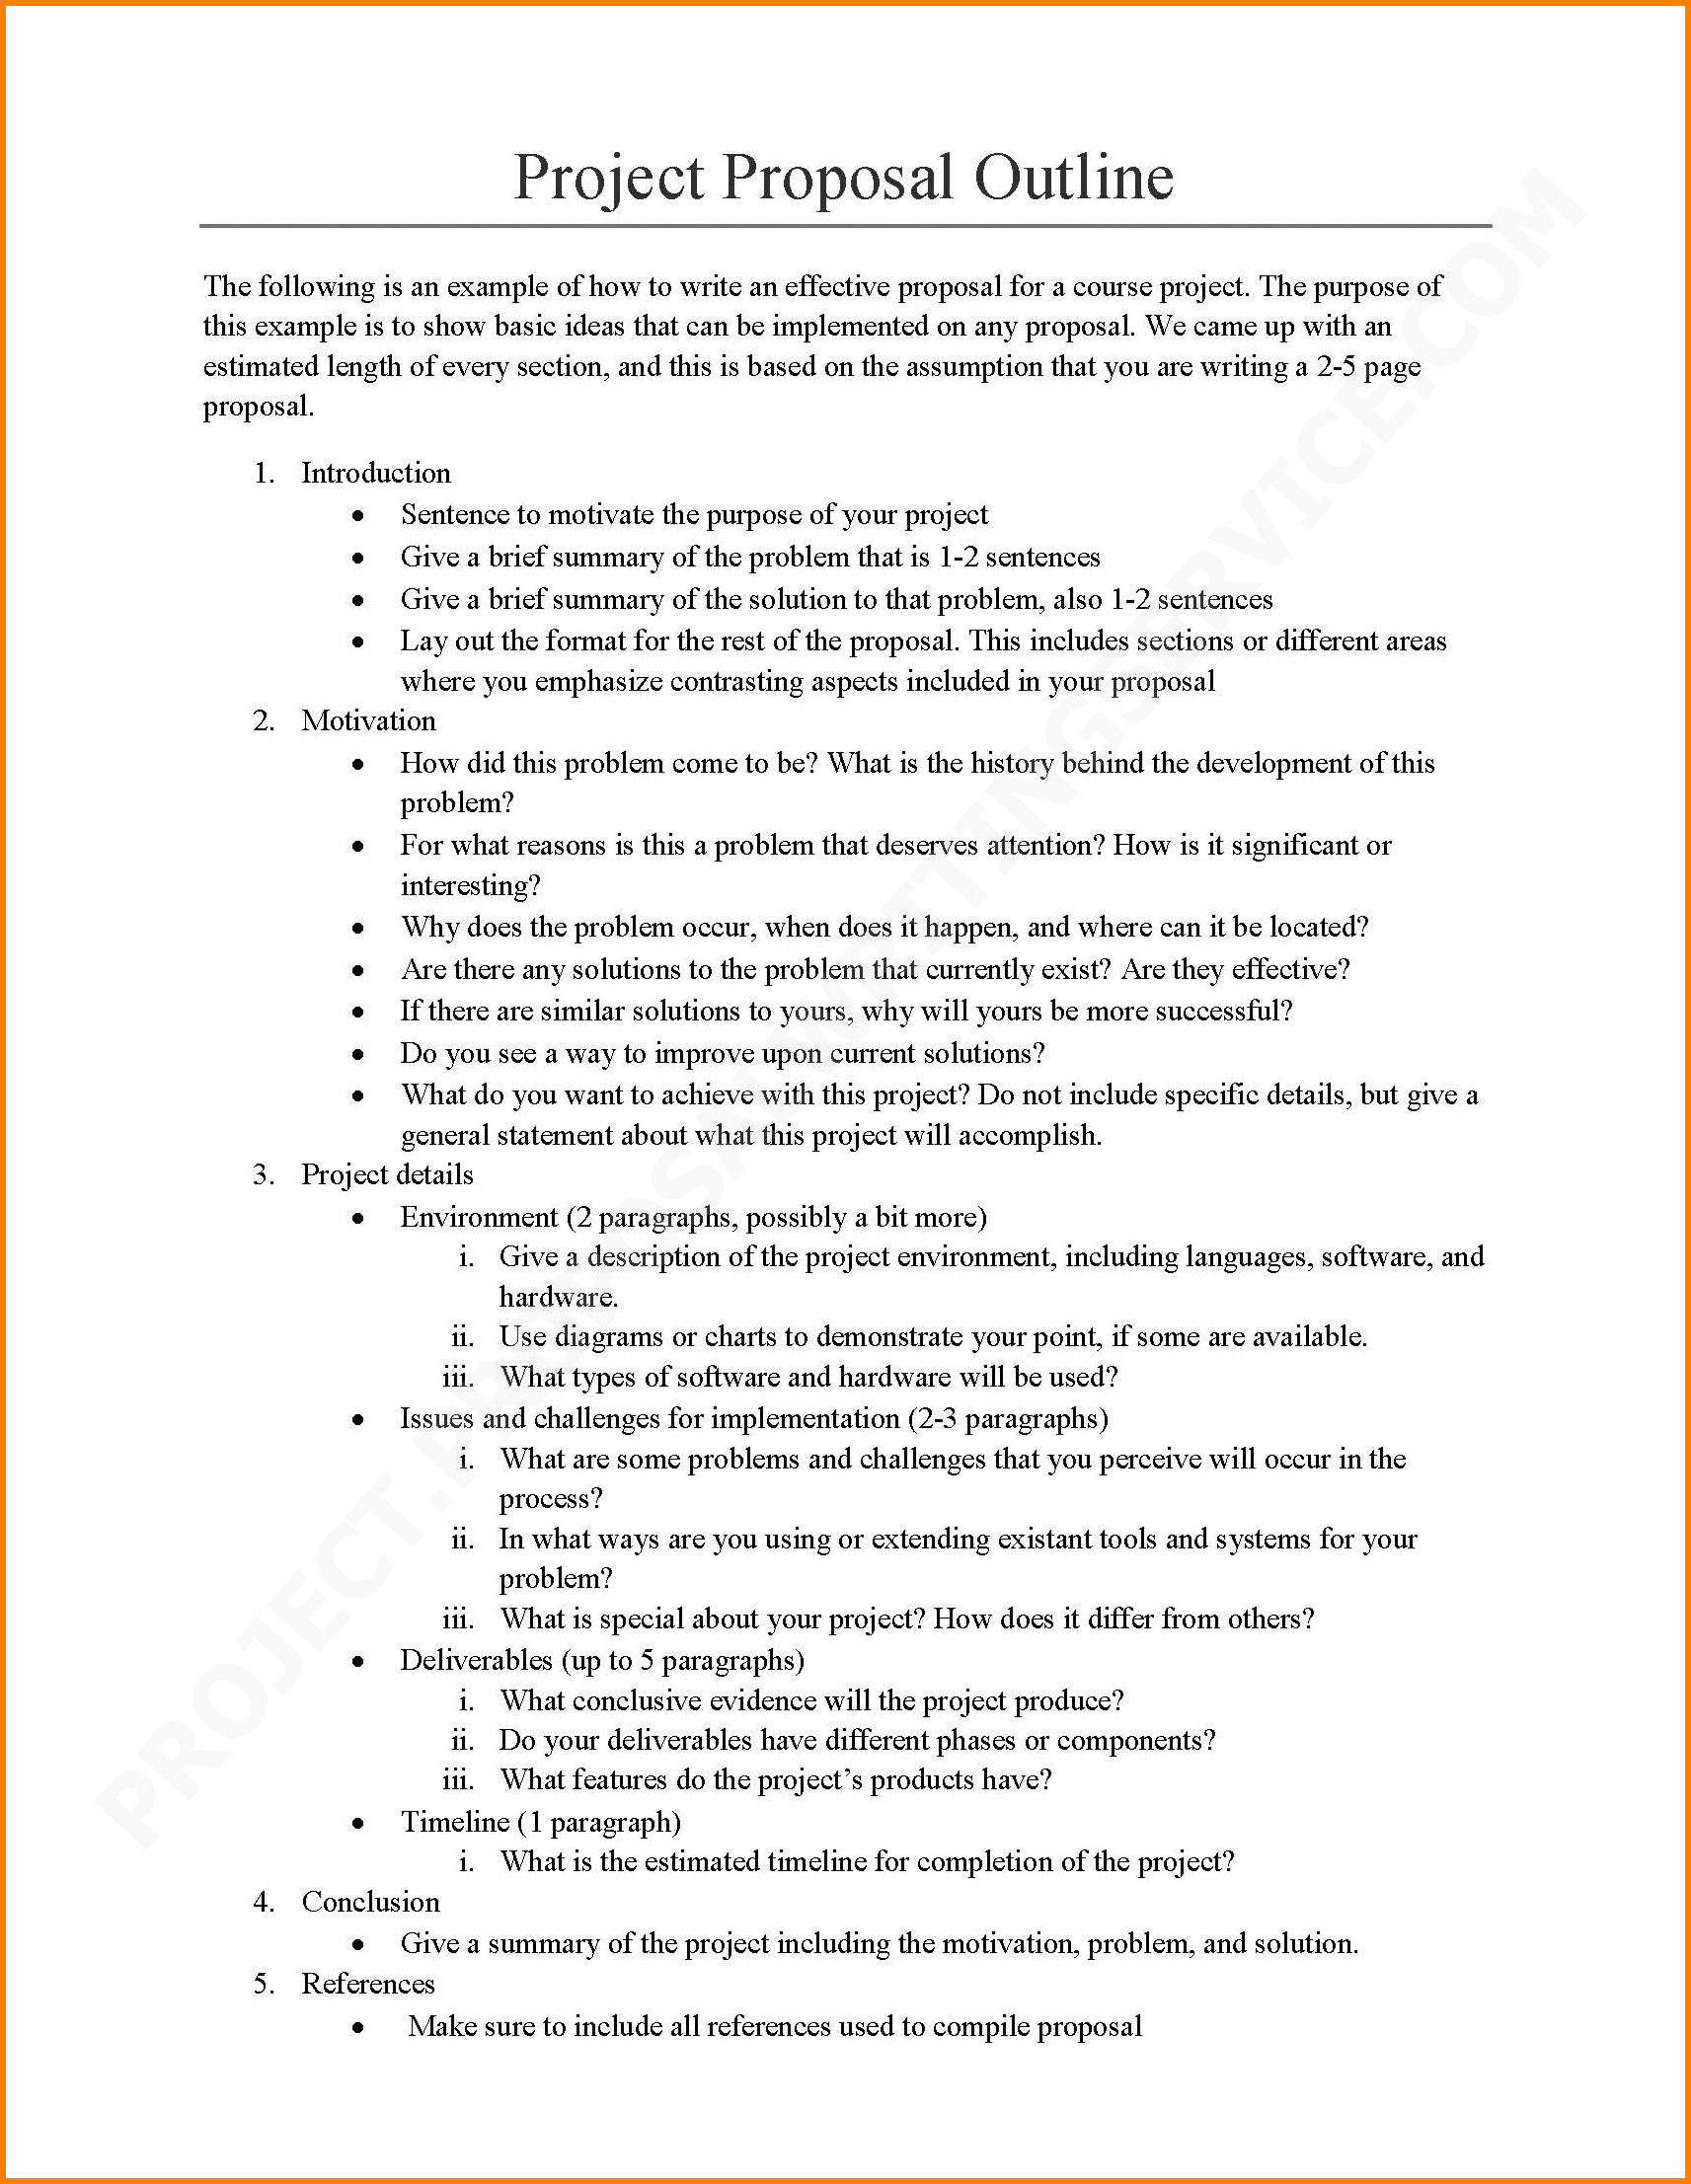 Image Result For Project Proposal For Students Template  Avid With Regard To Sample Business Proposal Template